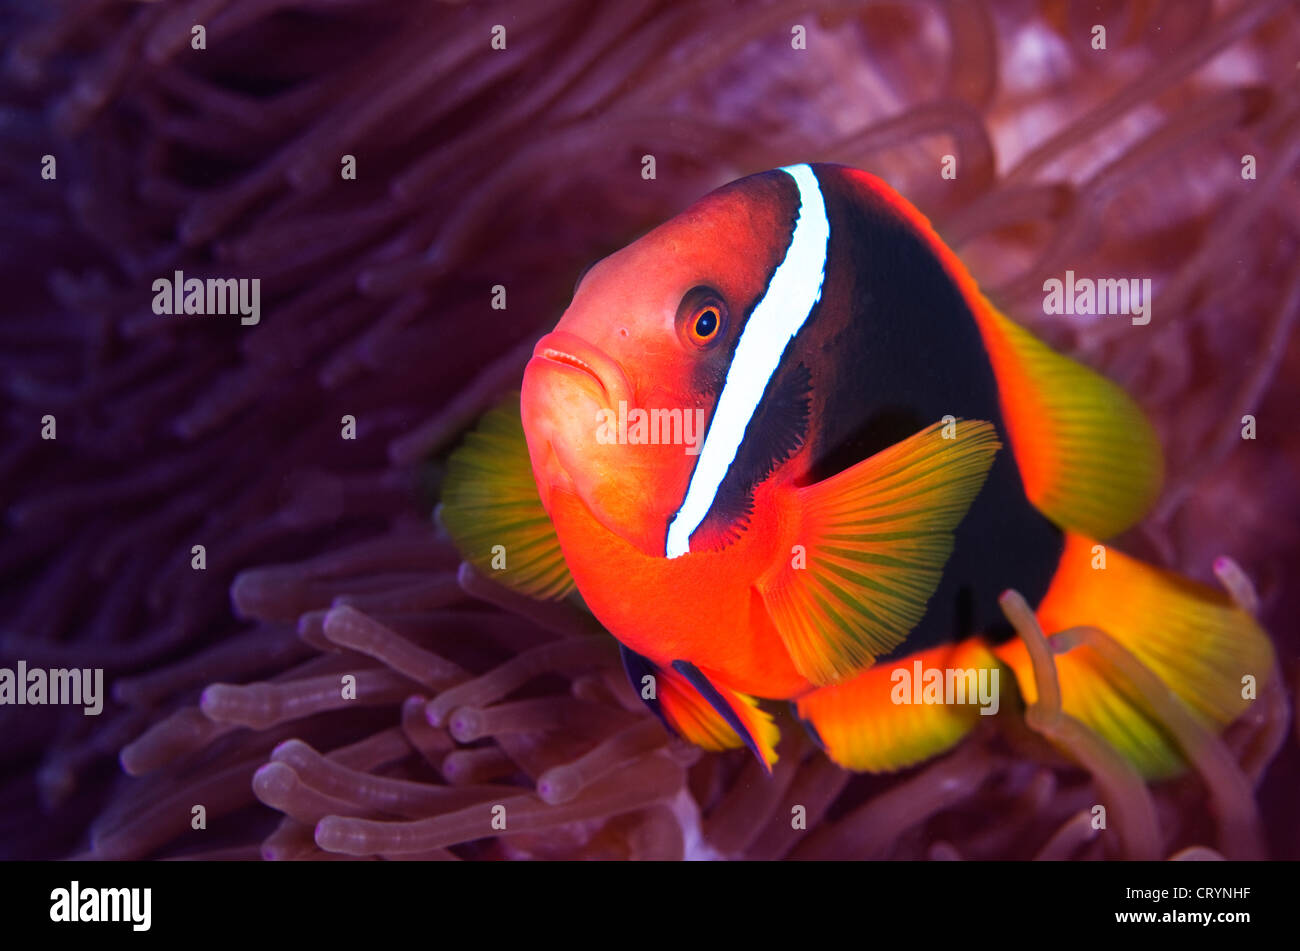 Anemone Fish Nemo Stock Photos & Anemone Fish Nemo Stock Images - Alamy